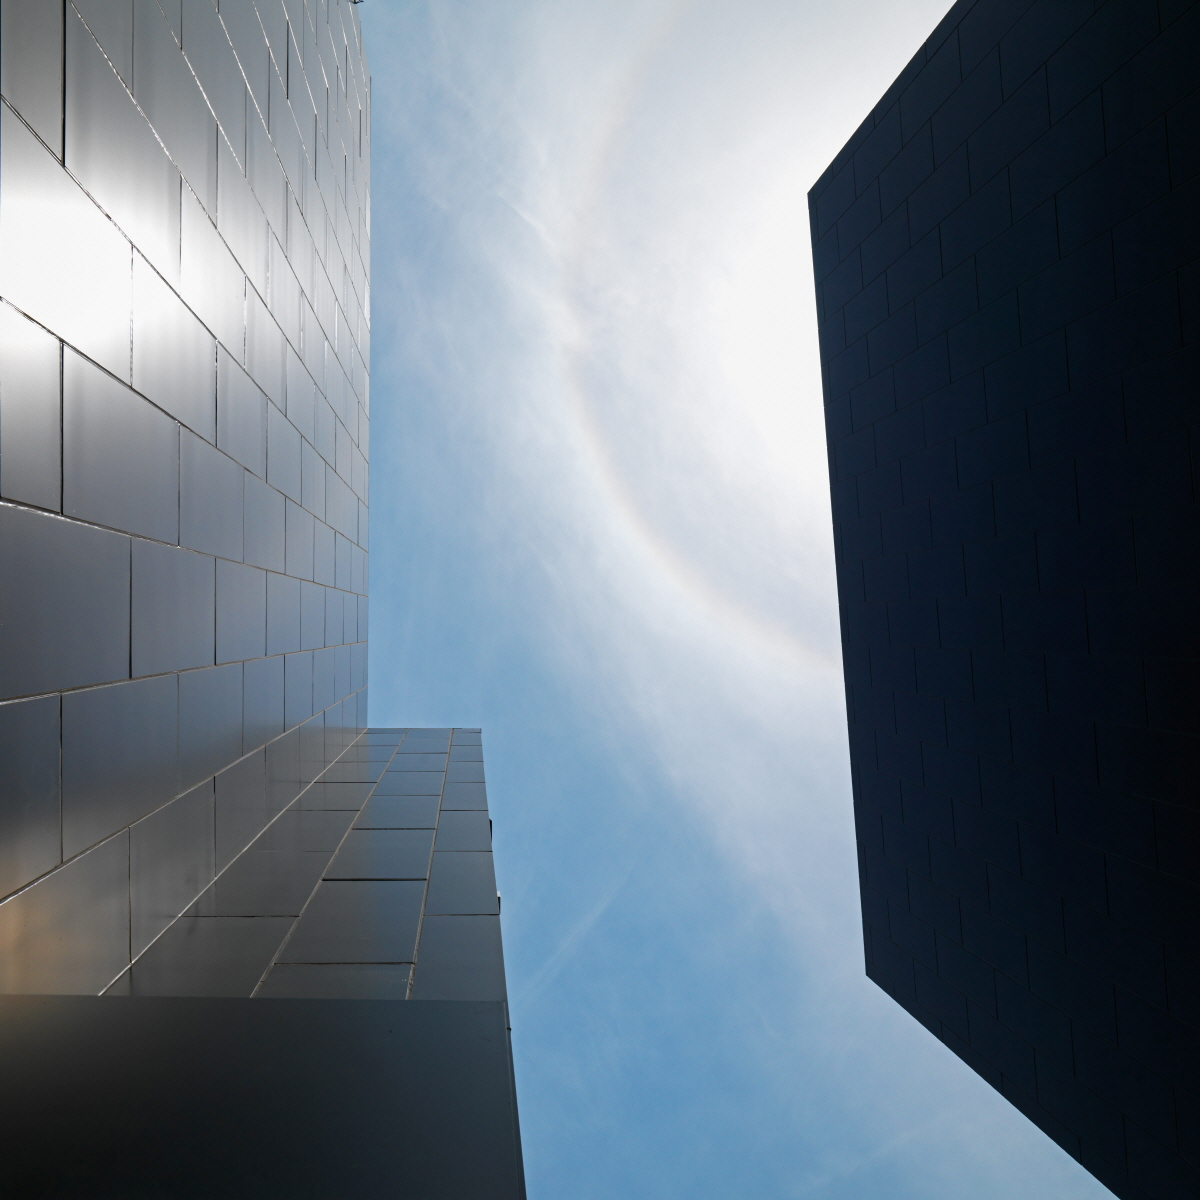 07.sky view between two buildings by Jungmin Seok